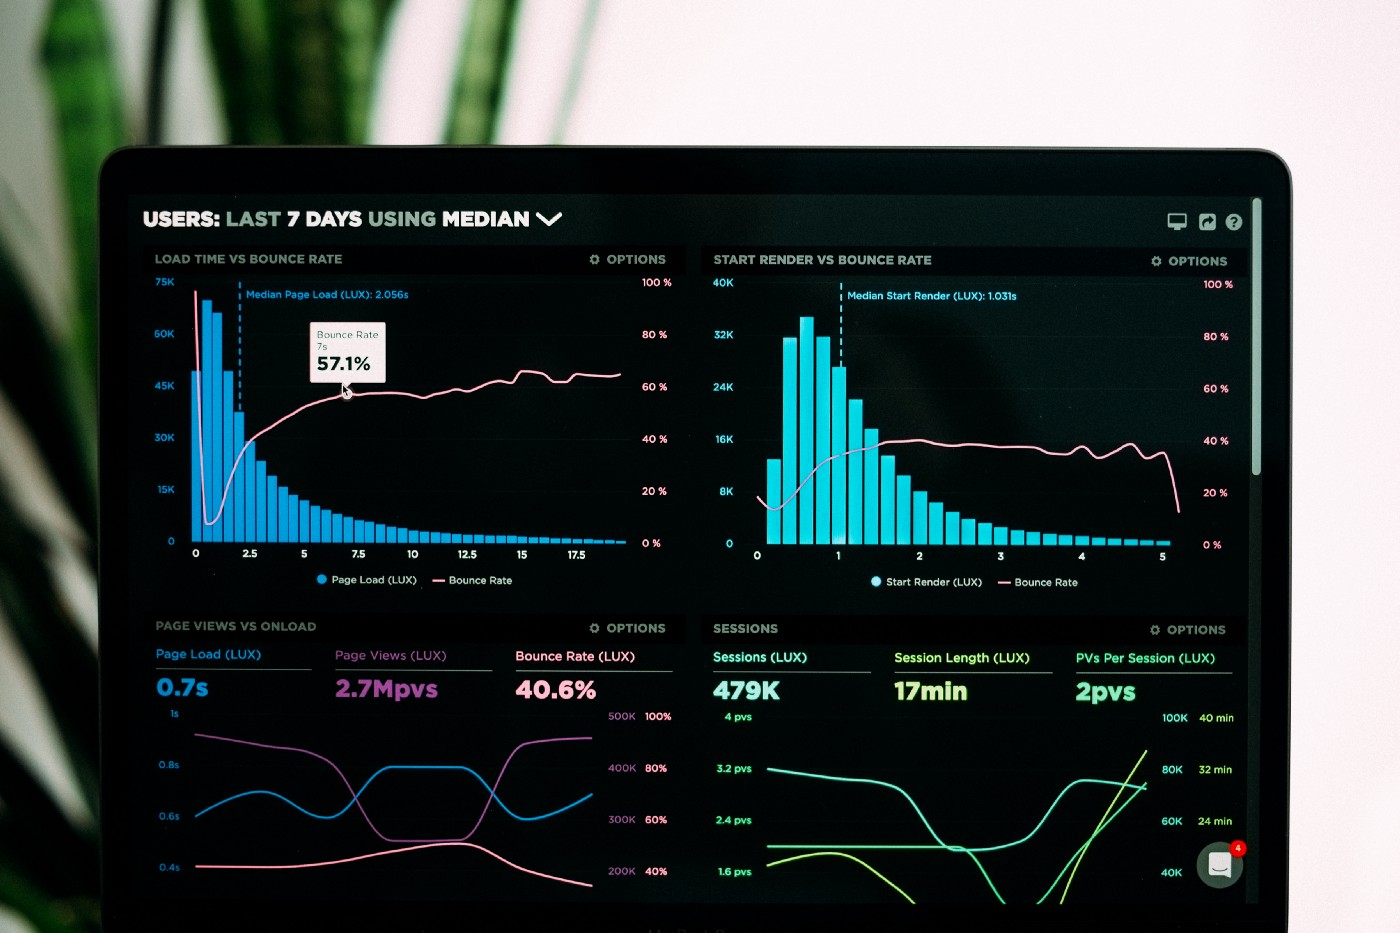 bar graphs and statistics on a screen